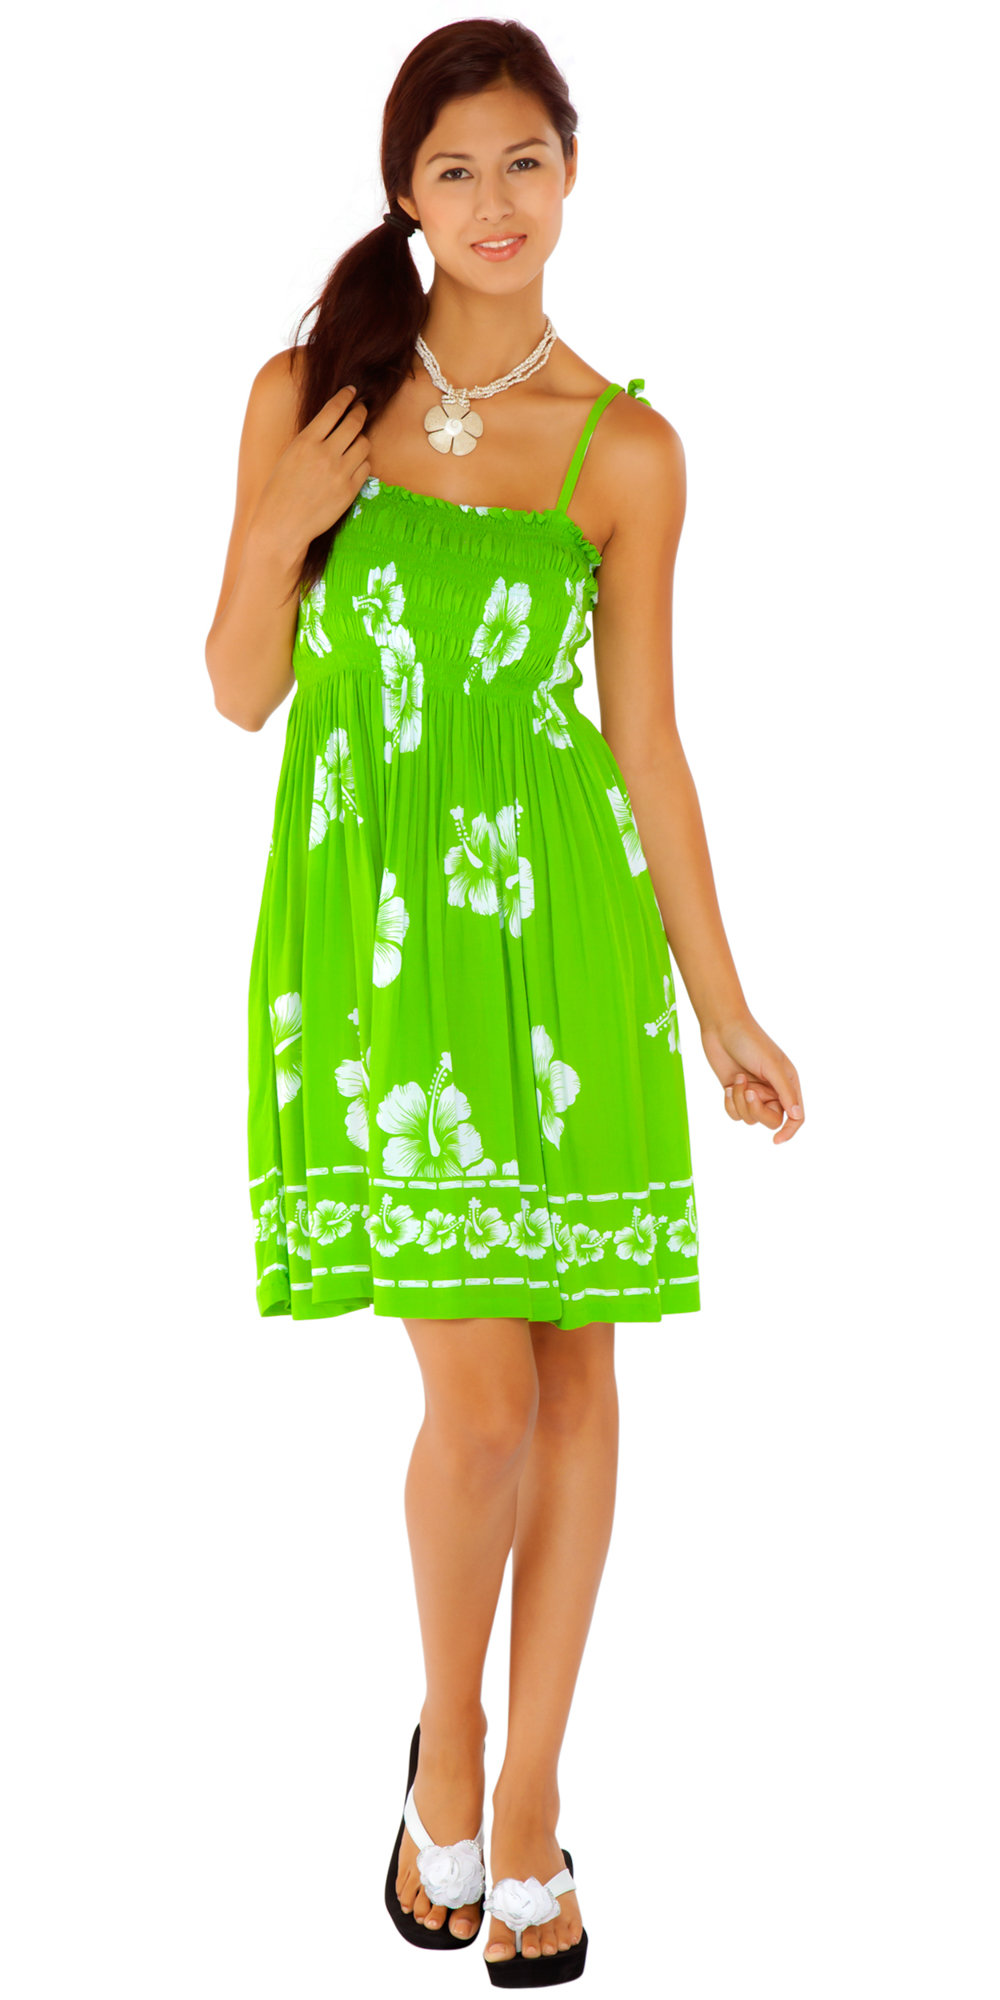 9c26bfb7e0 Tube top sundress hibiscus design in lime green white jpg 1000x2000 Cotton tube  top sundresses